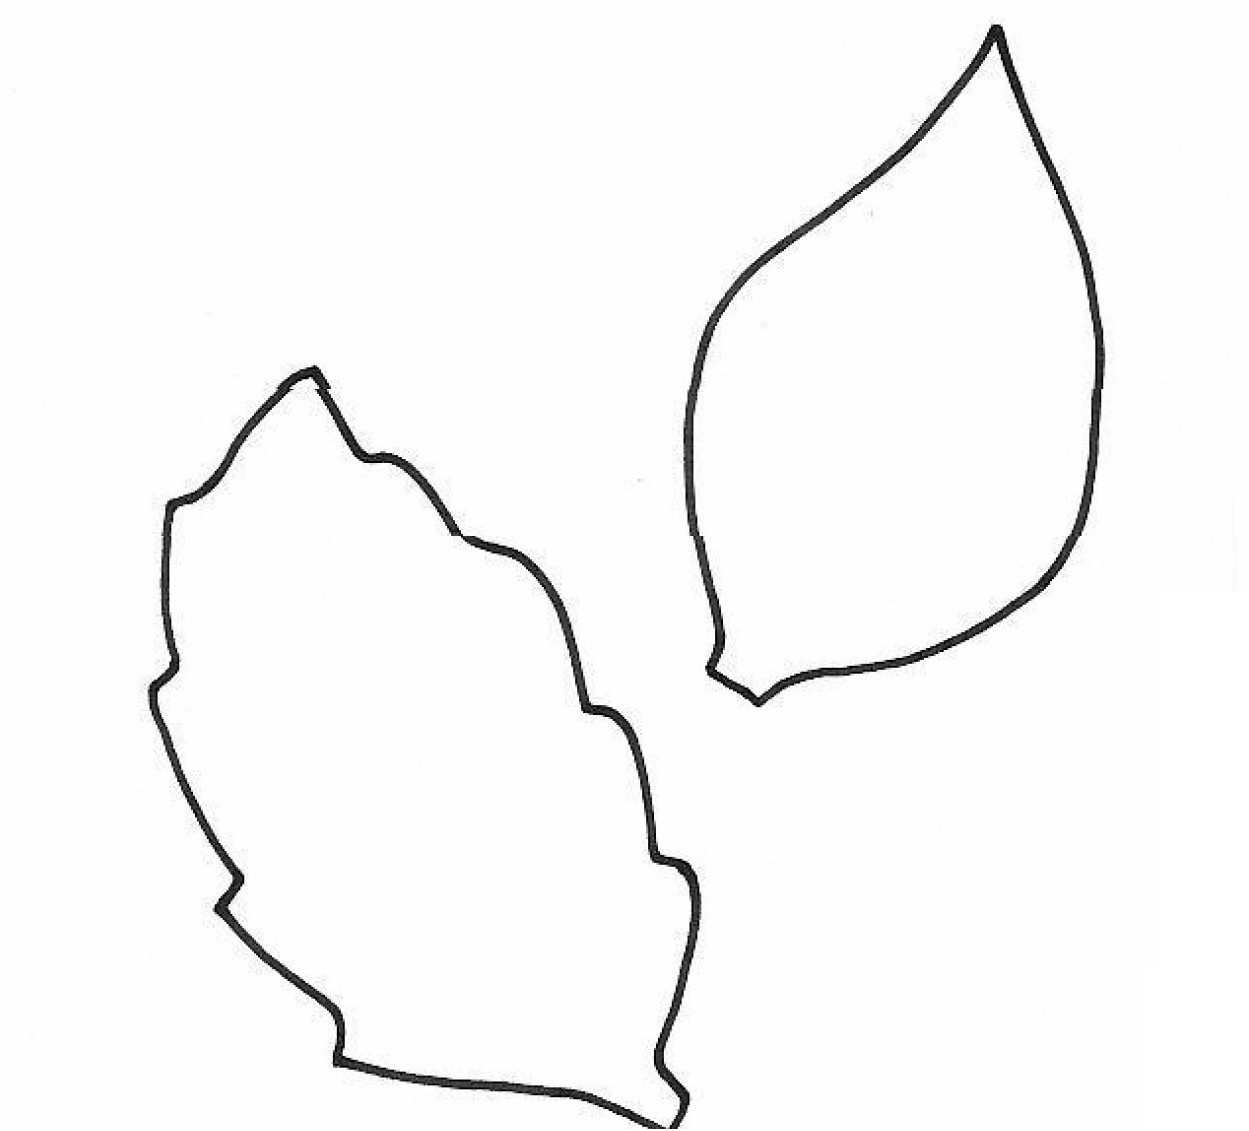 Free Leaf Pattern Cliparts, Download Free Clip Art, Free Clip Art On - Free Printable Leaf Template